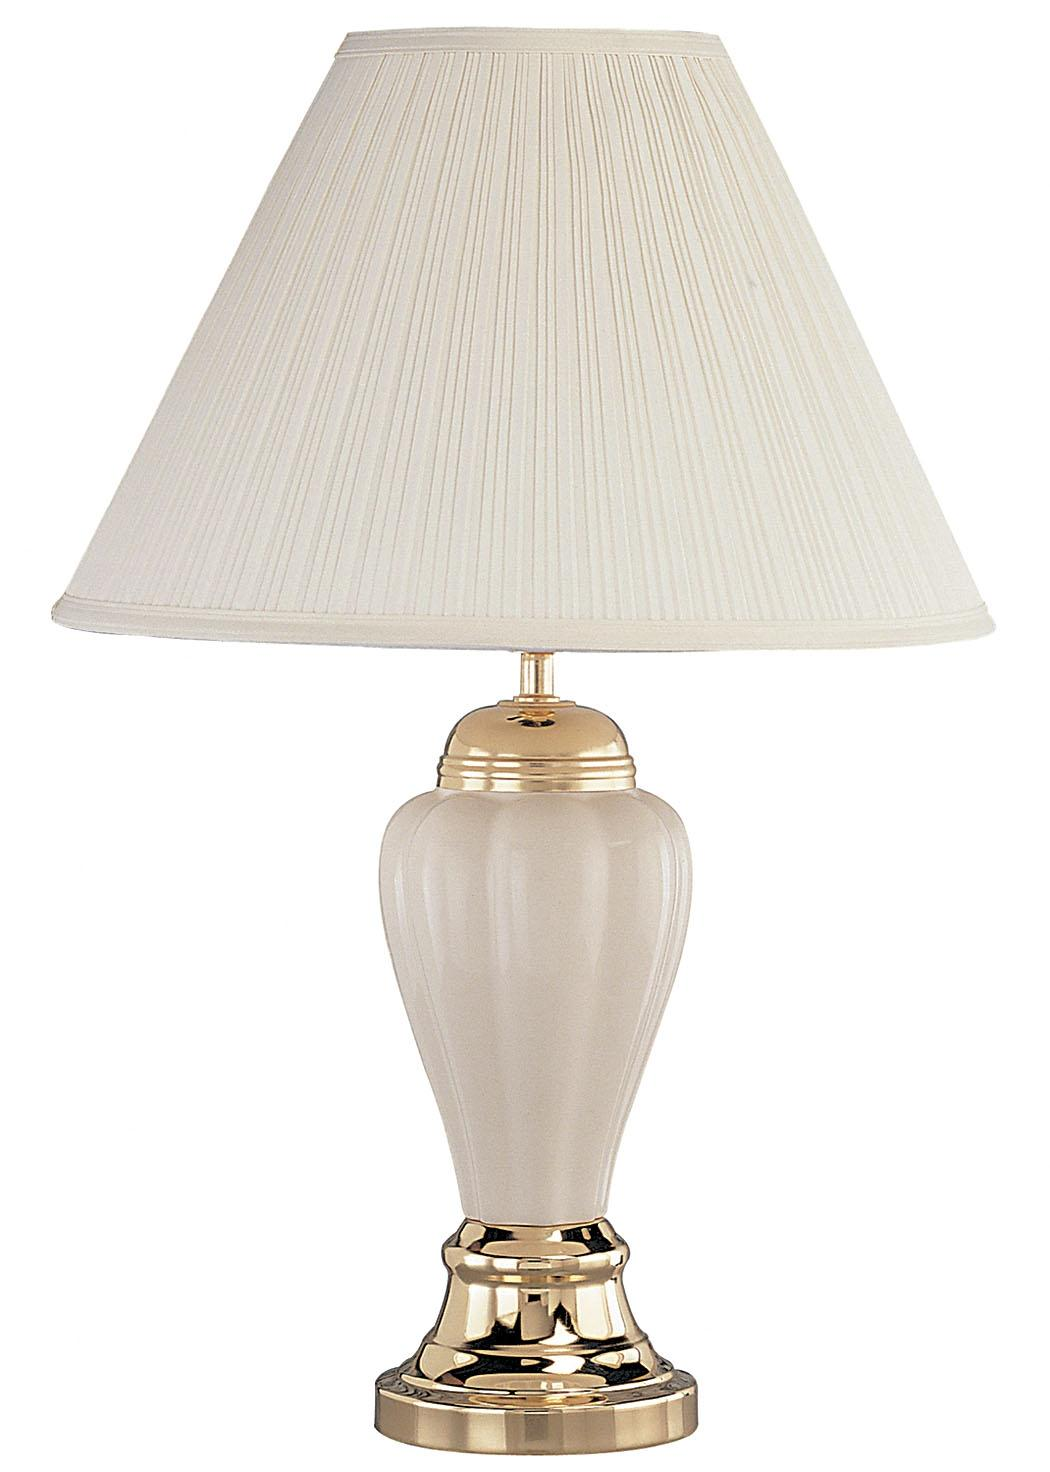 ORE International Gold Base Ceramic Table Lamp by OJ